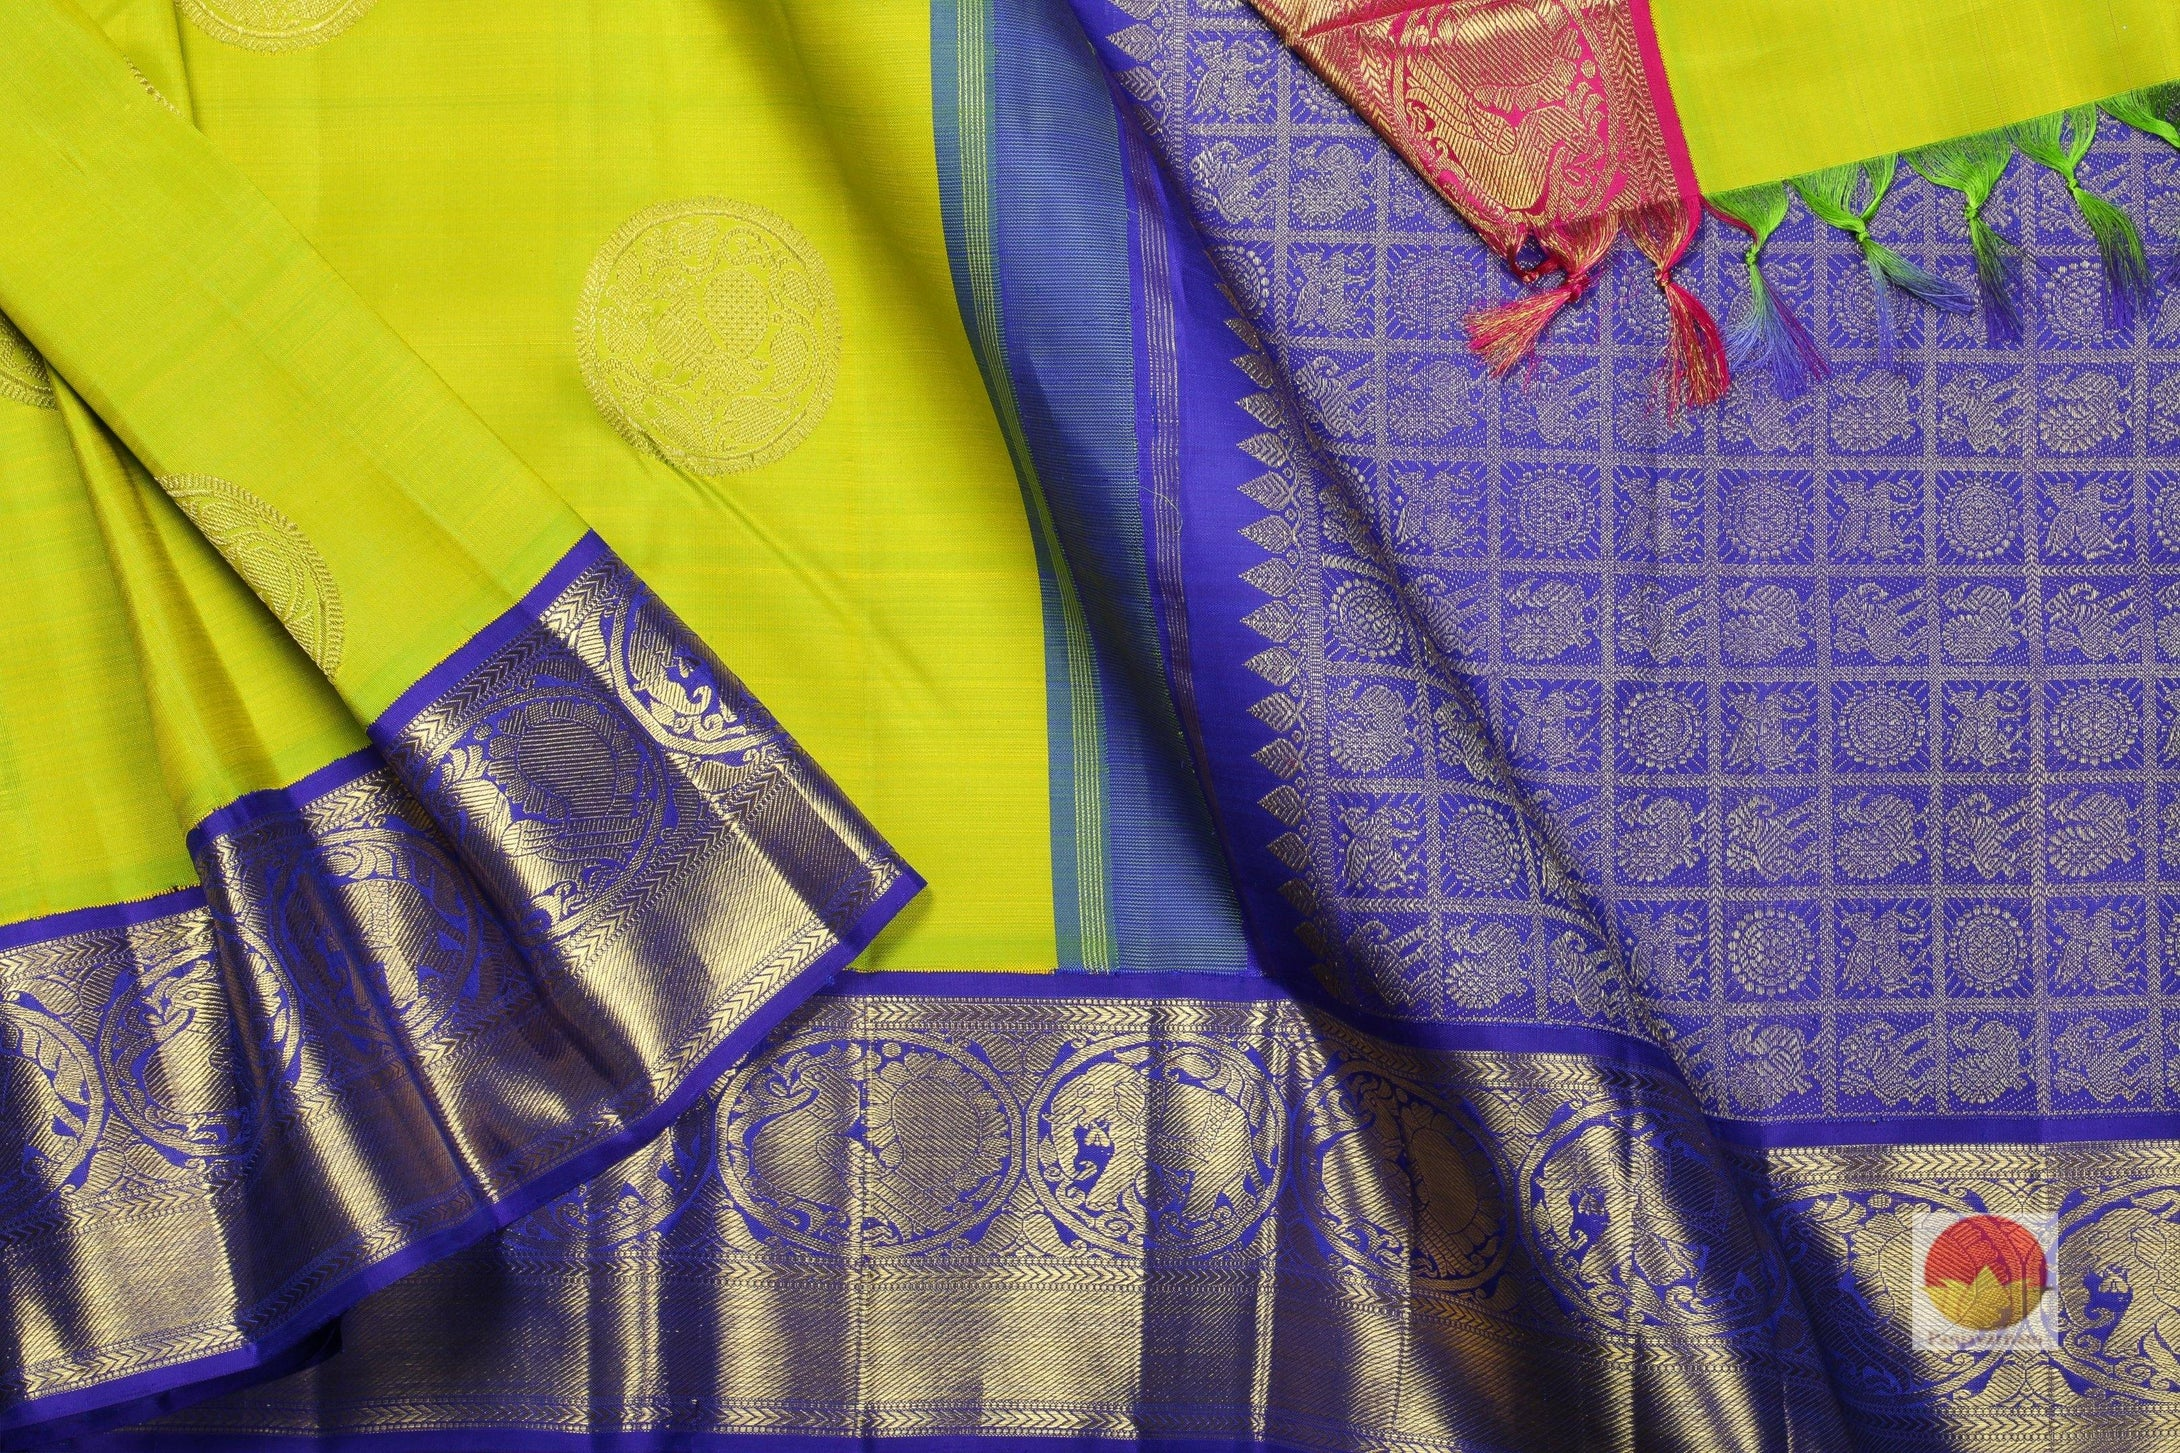 body, border and pallu of green shot yellow kanjivaram pure silk saree